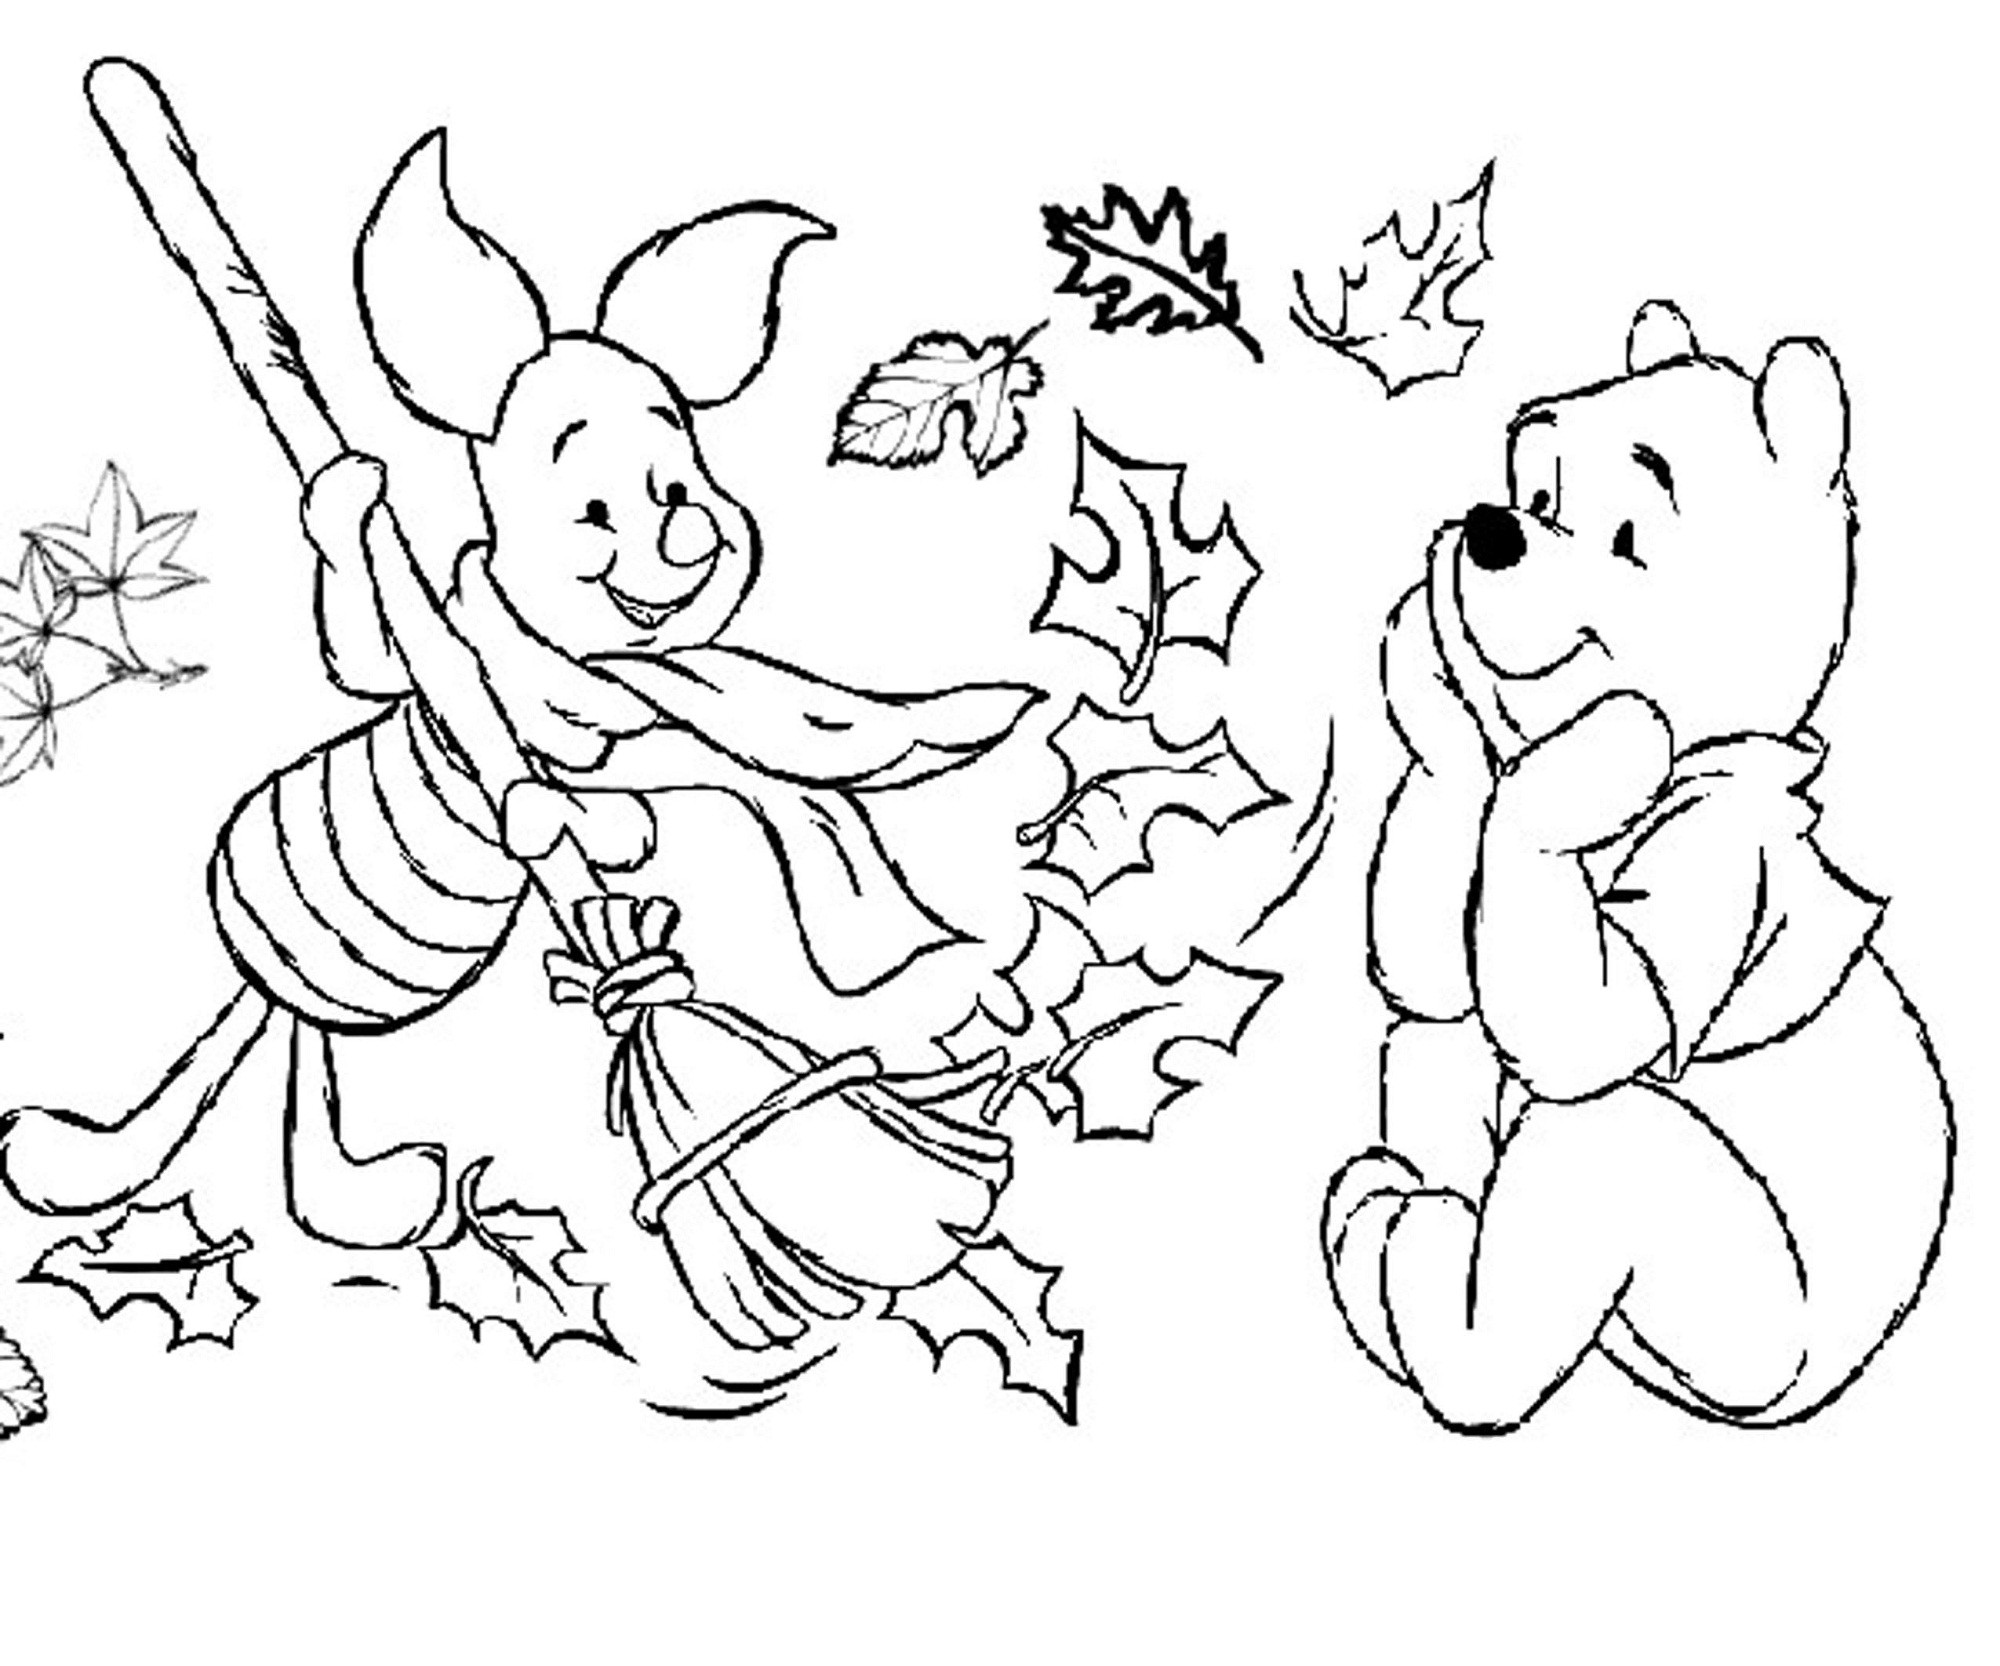 2000x1666 Revealing Fall Pictures To Color Printable Easy Online Coloring